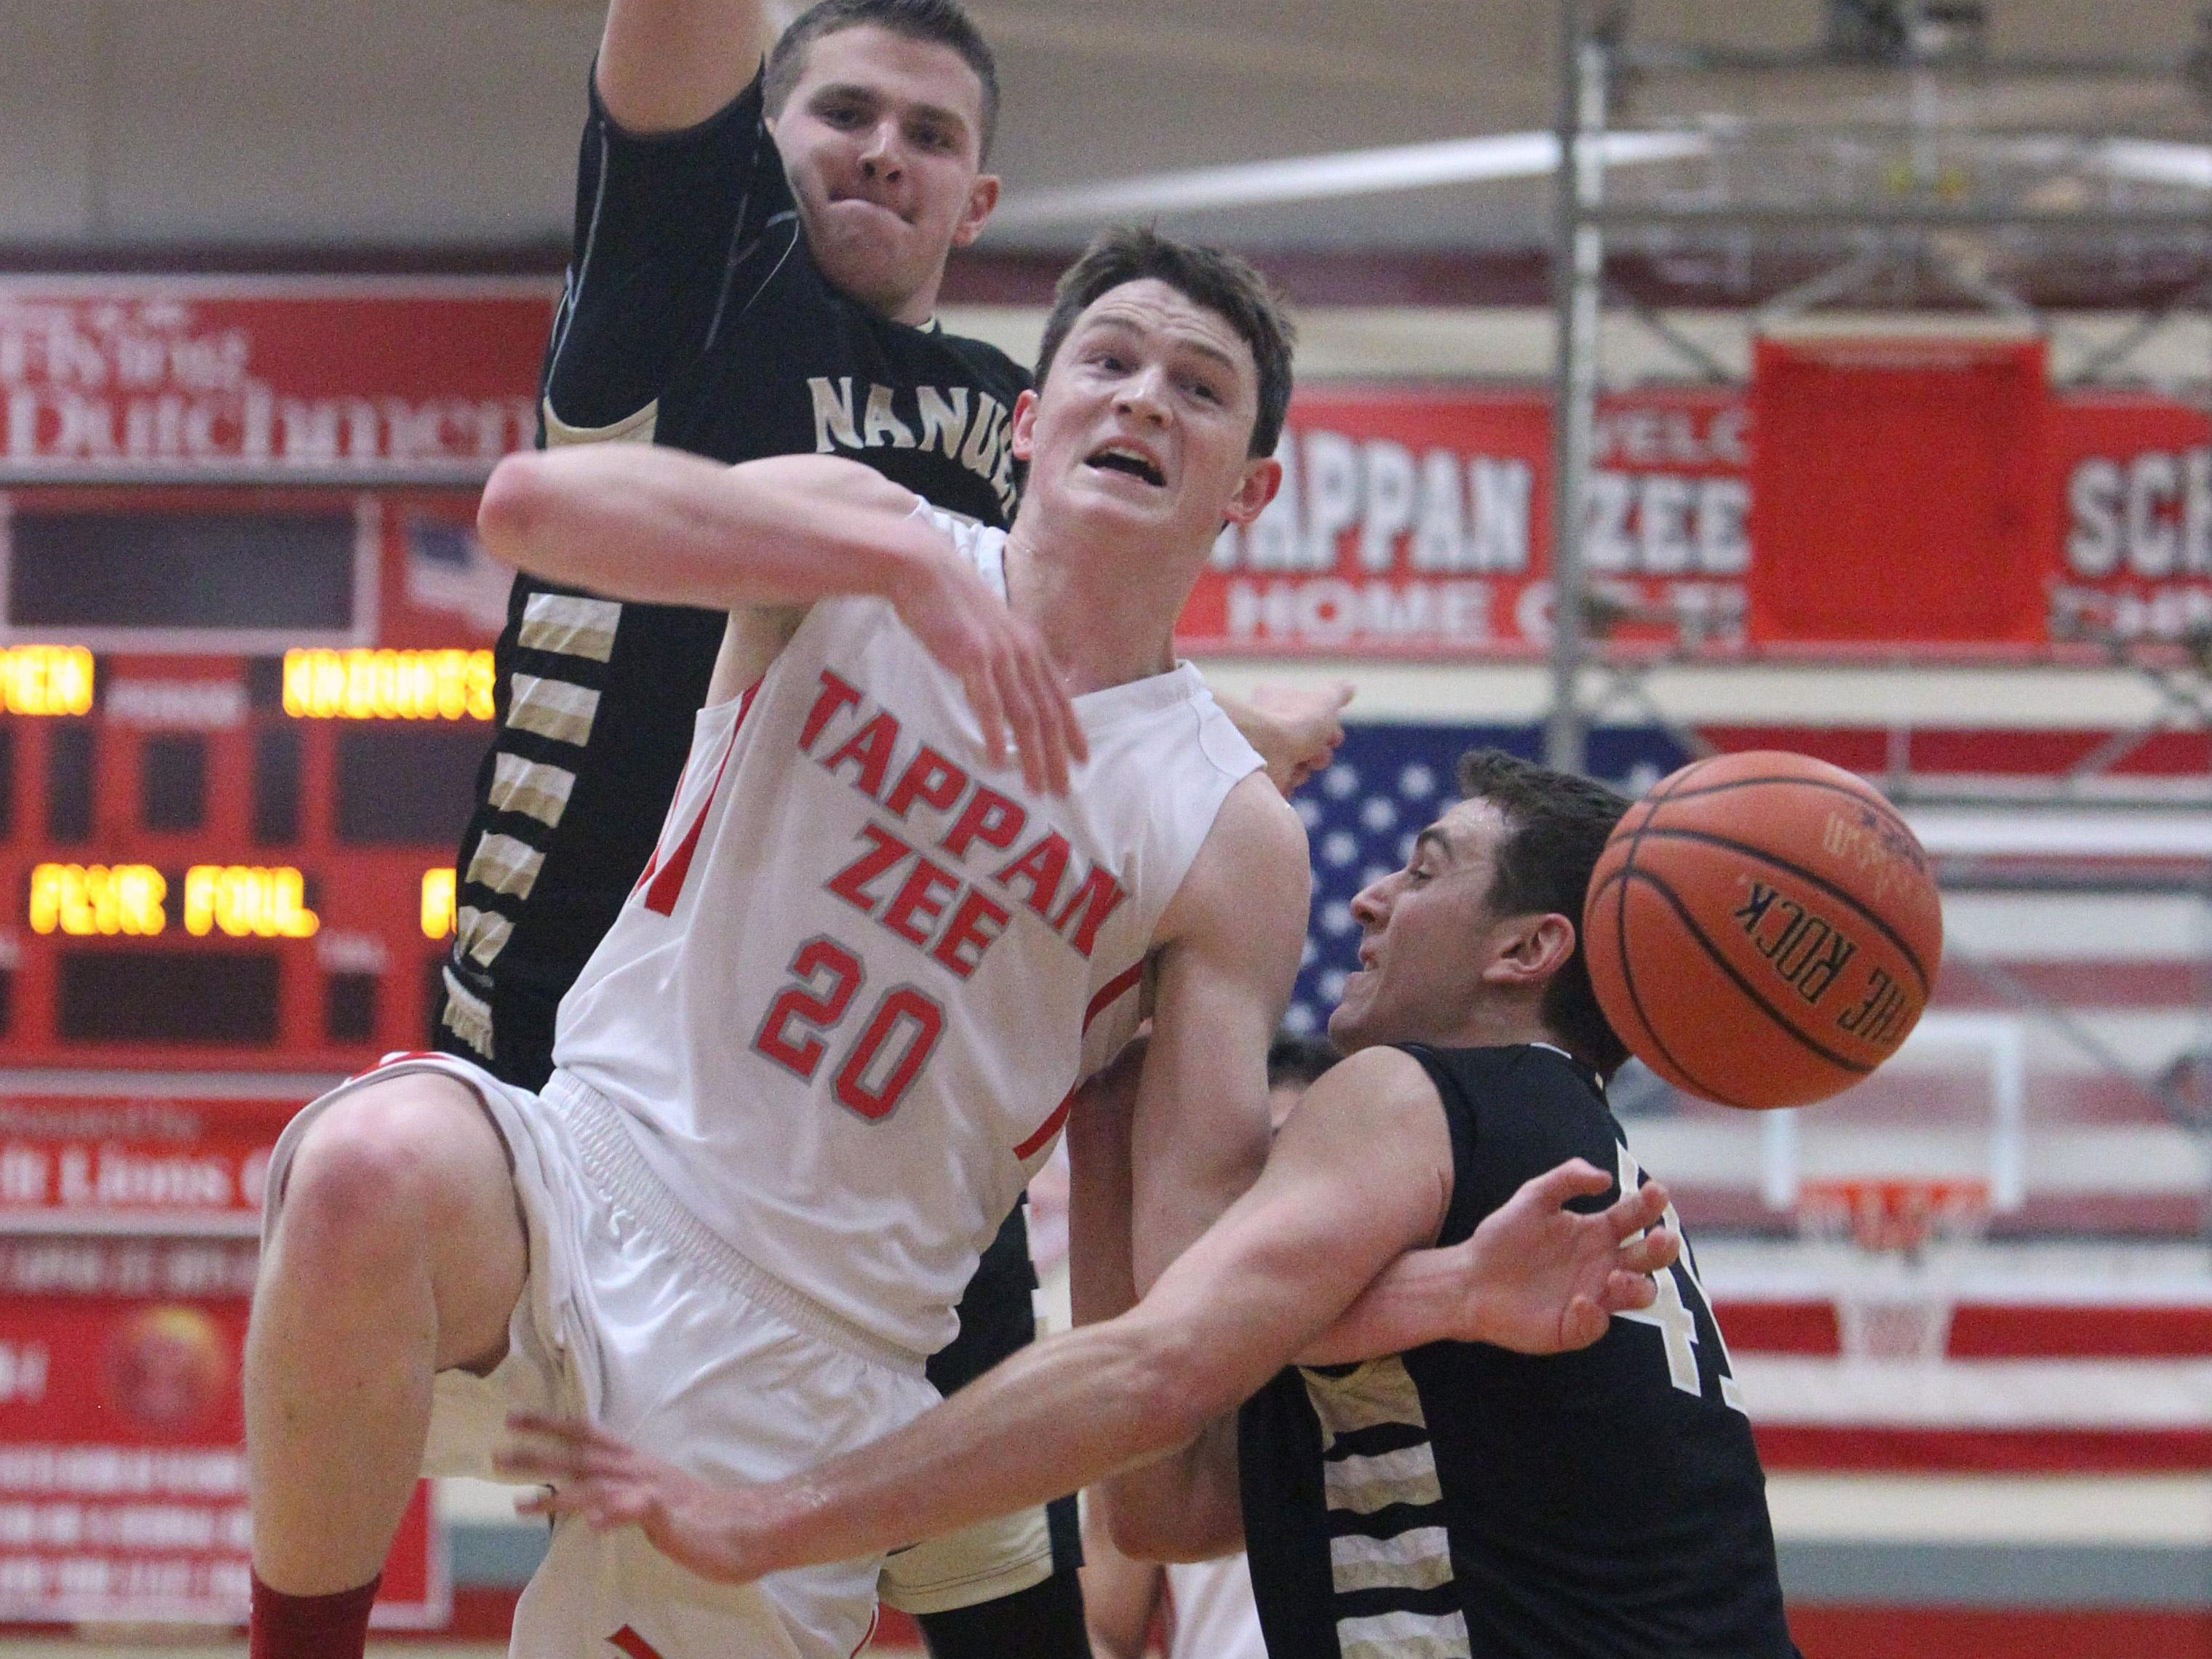 Tappan Zee's Kevin Lynch is fouled while driving on Nanuet's Jordan Landsman, left, and Aedan Lombardo during their game at Tappan Zee on Wednesday. The Dutchmen won 59-46.